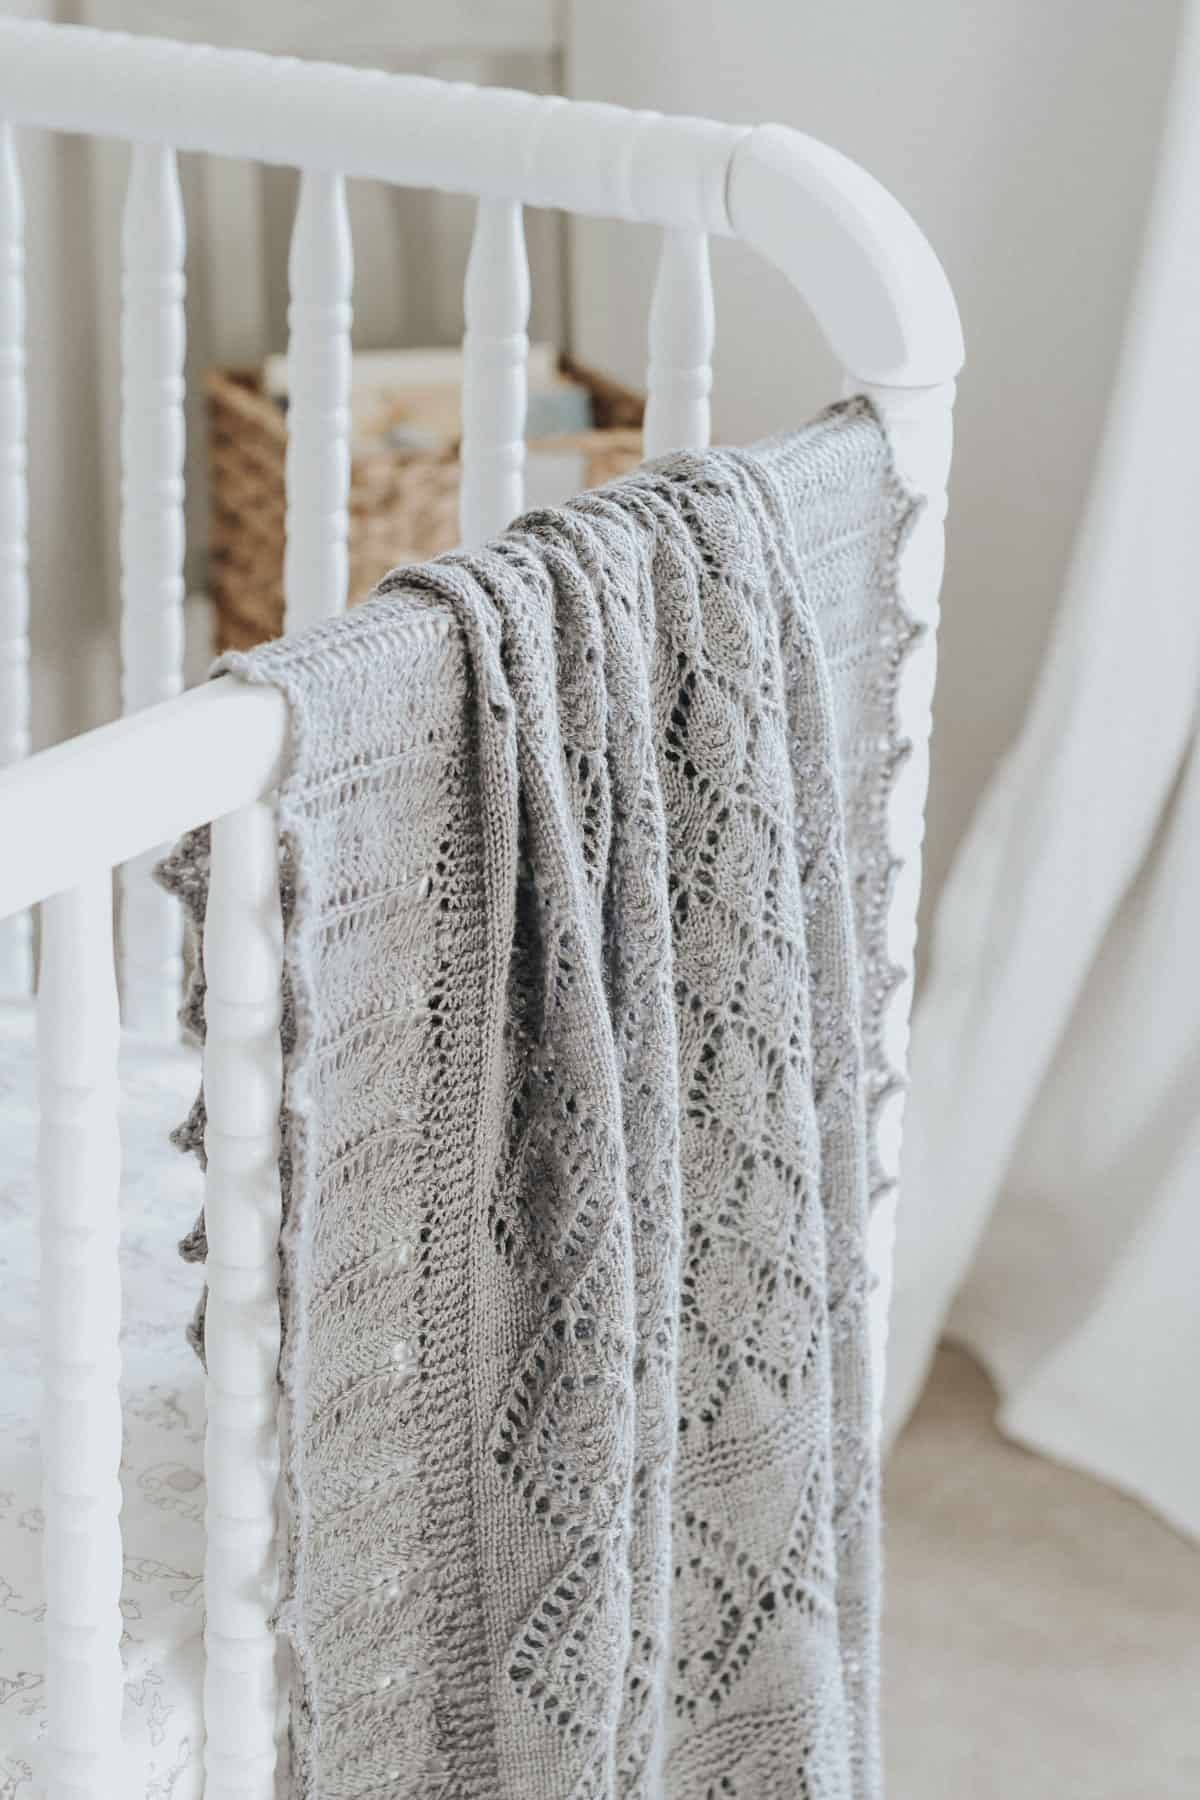 Close up view of heirloom knit blanket on a Jenny Lind crib.